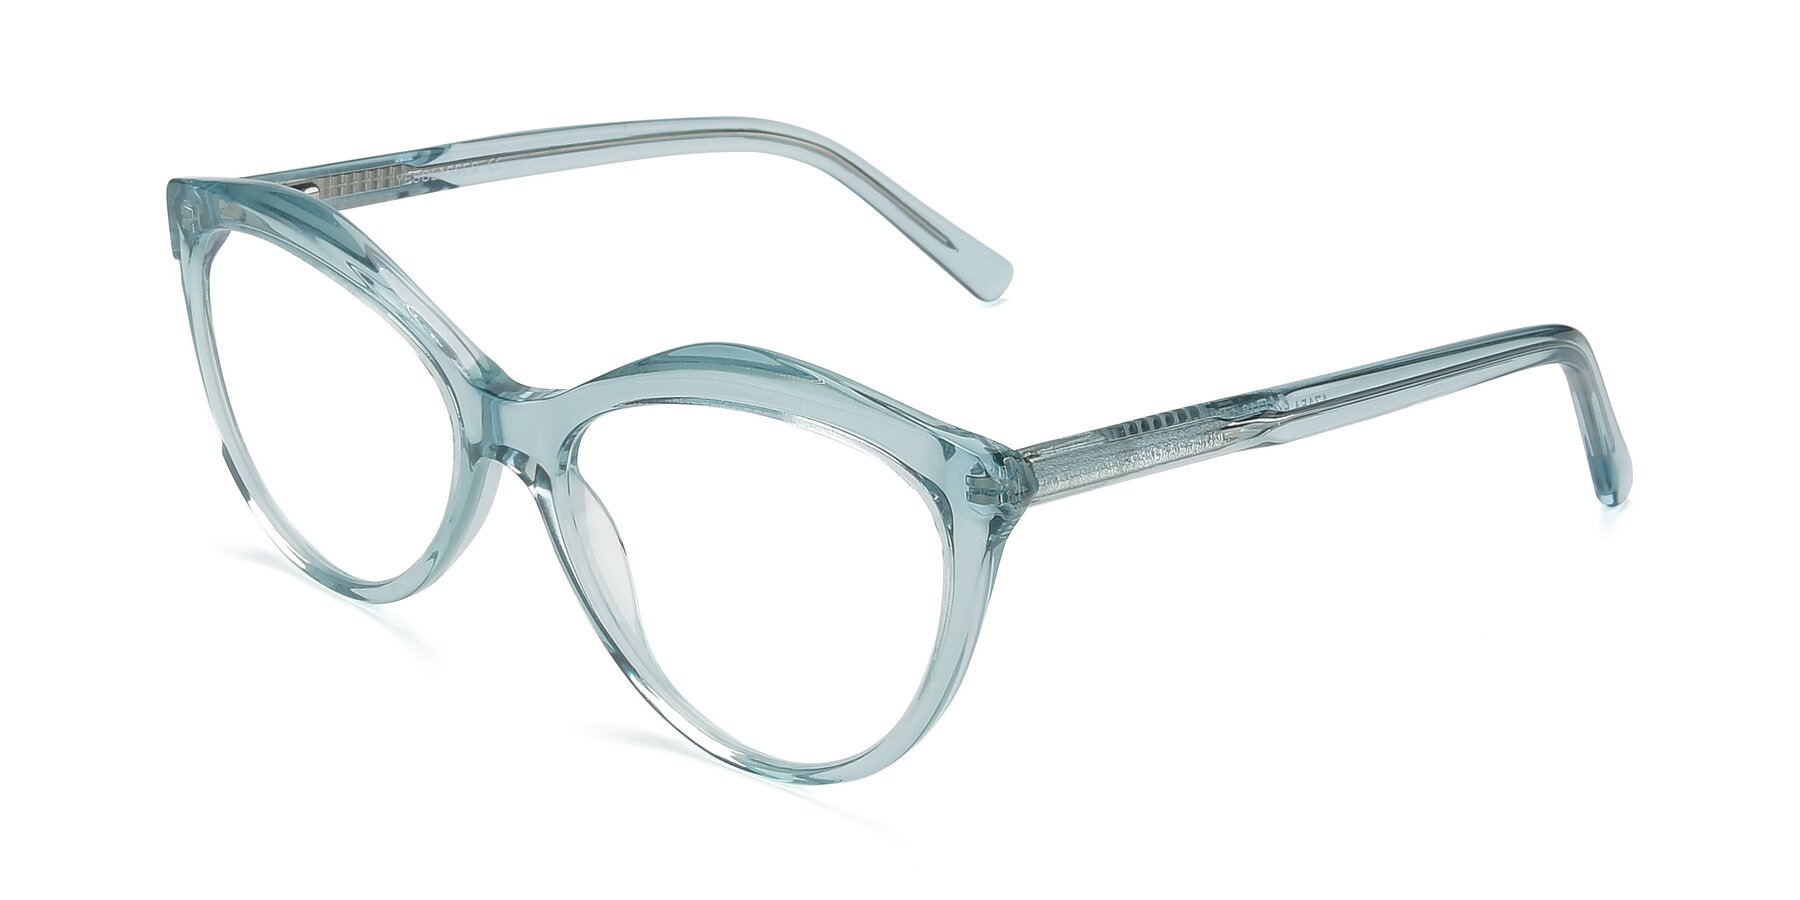 Angle of 17154 in Transparent Green with Clear Eyeglass Lenses